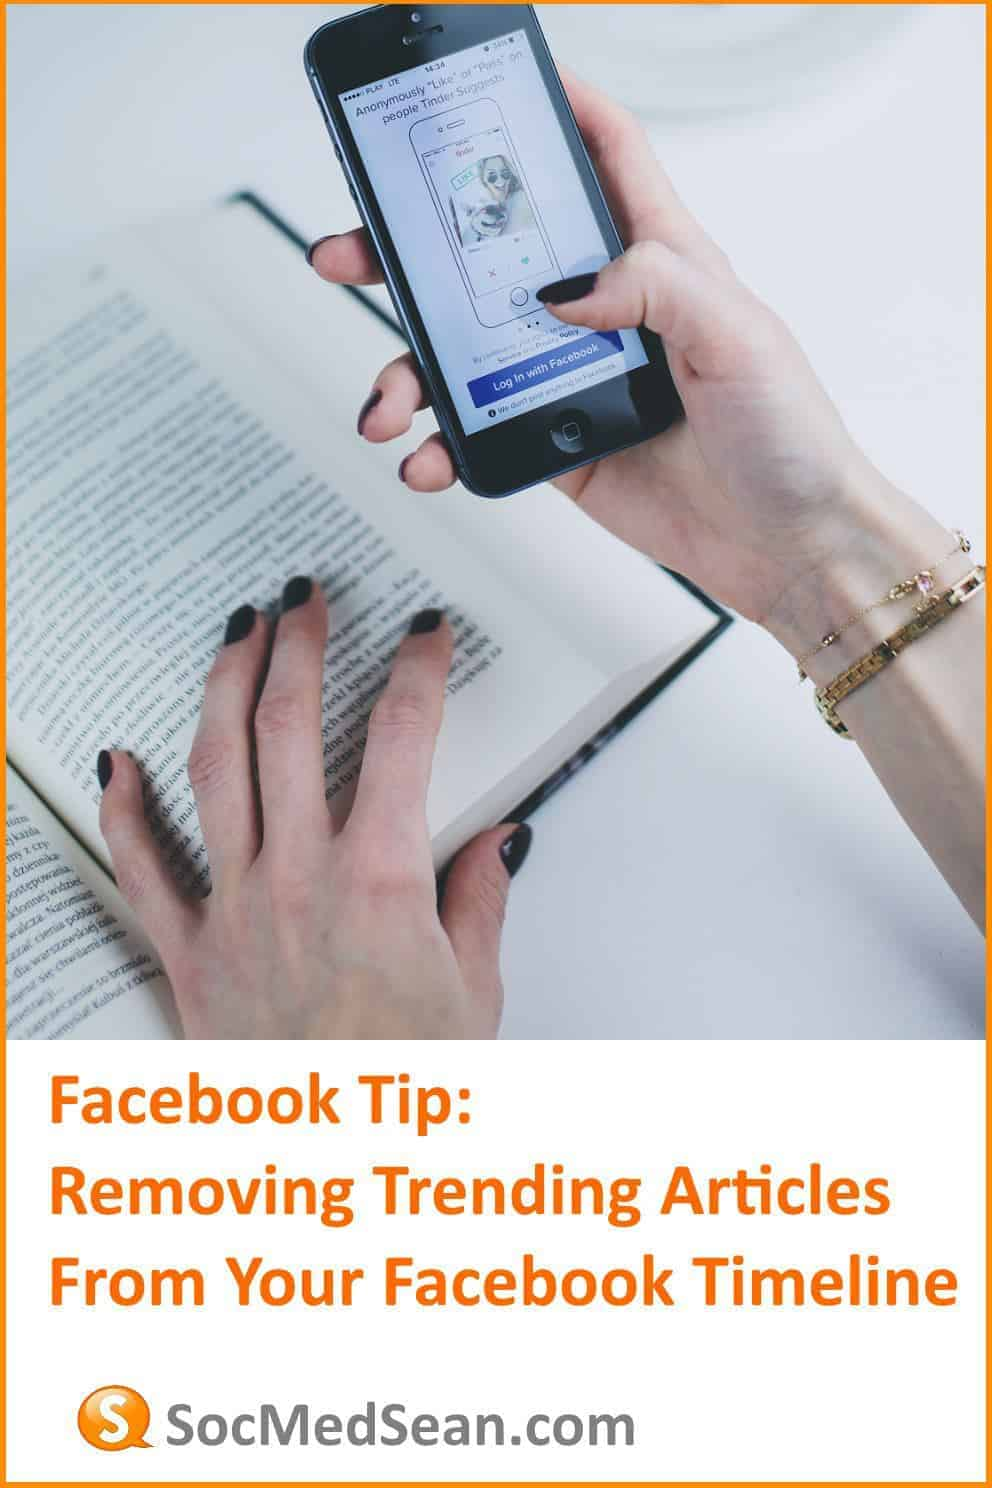 Steps to remove trending articles from your Facebook timeline